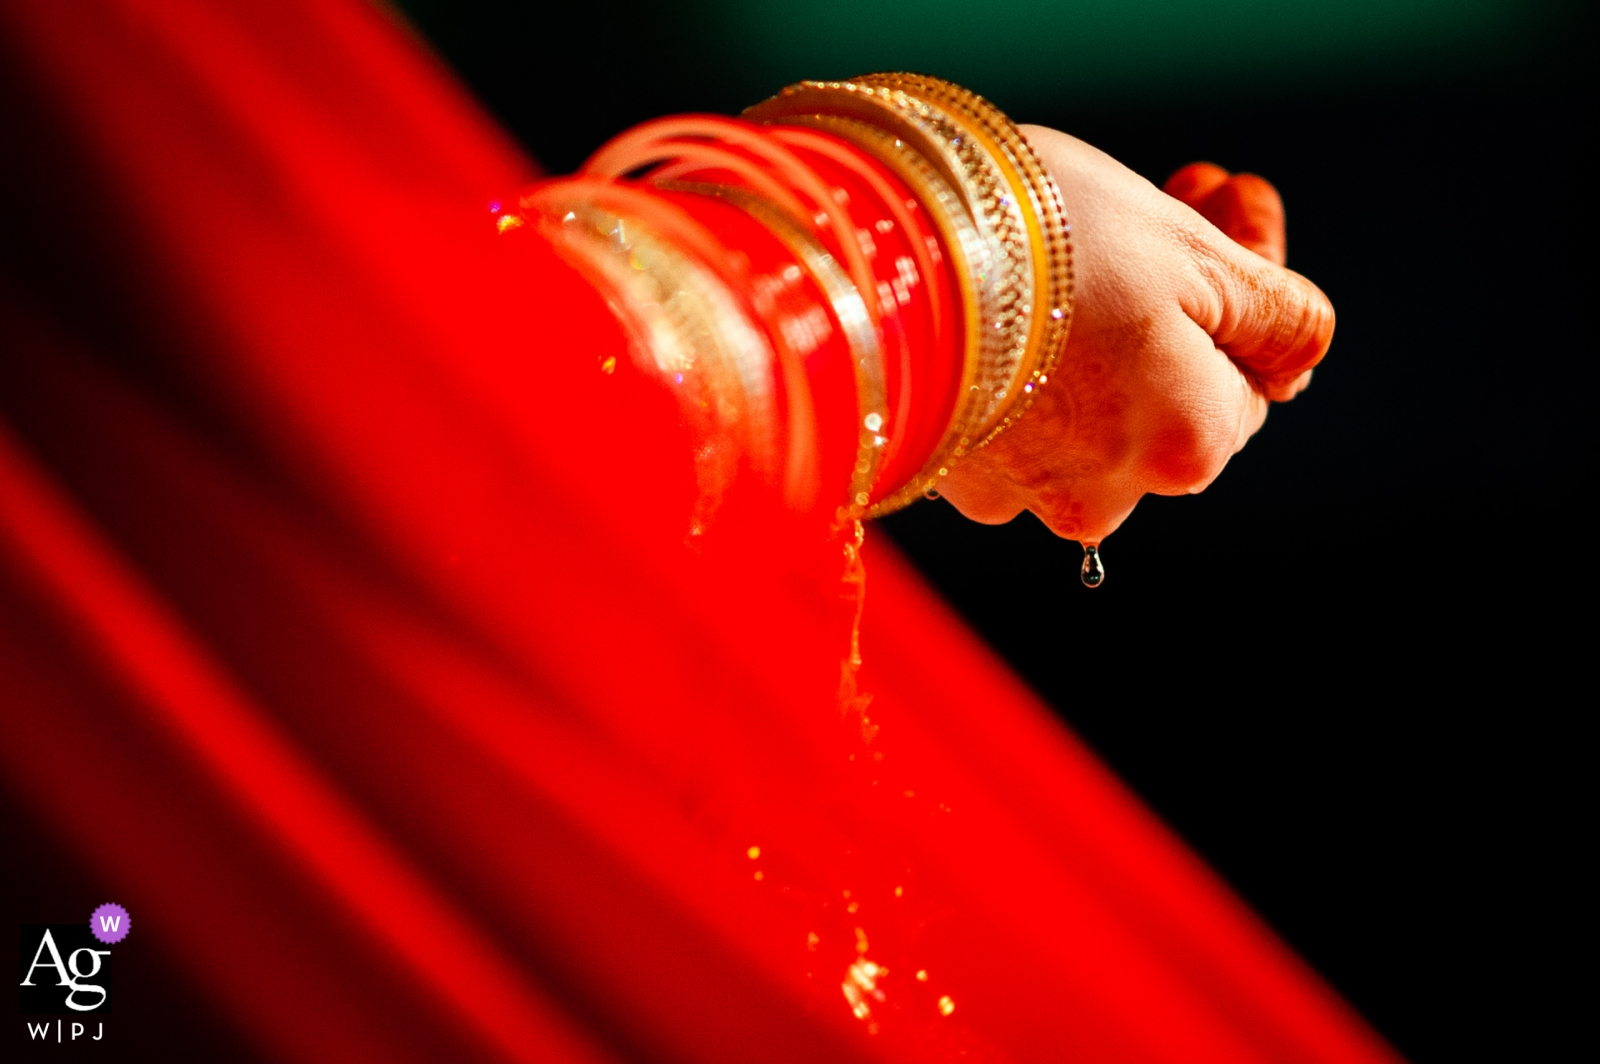 London wedding photographer shot this detail photo of water dripping off the brides hands and bangled covered wrists